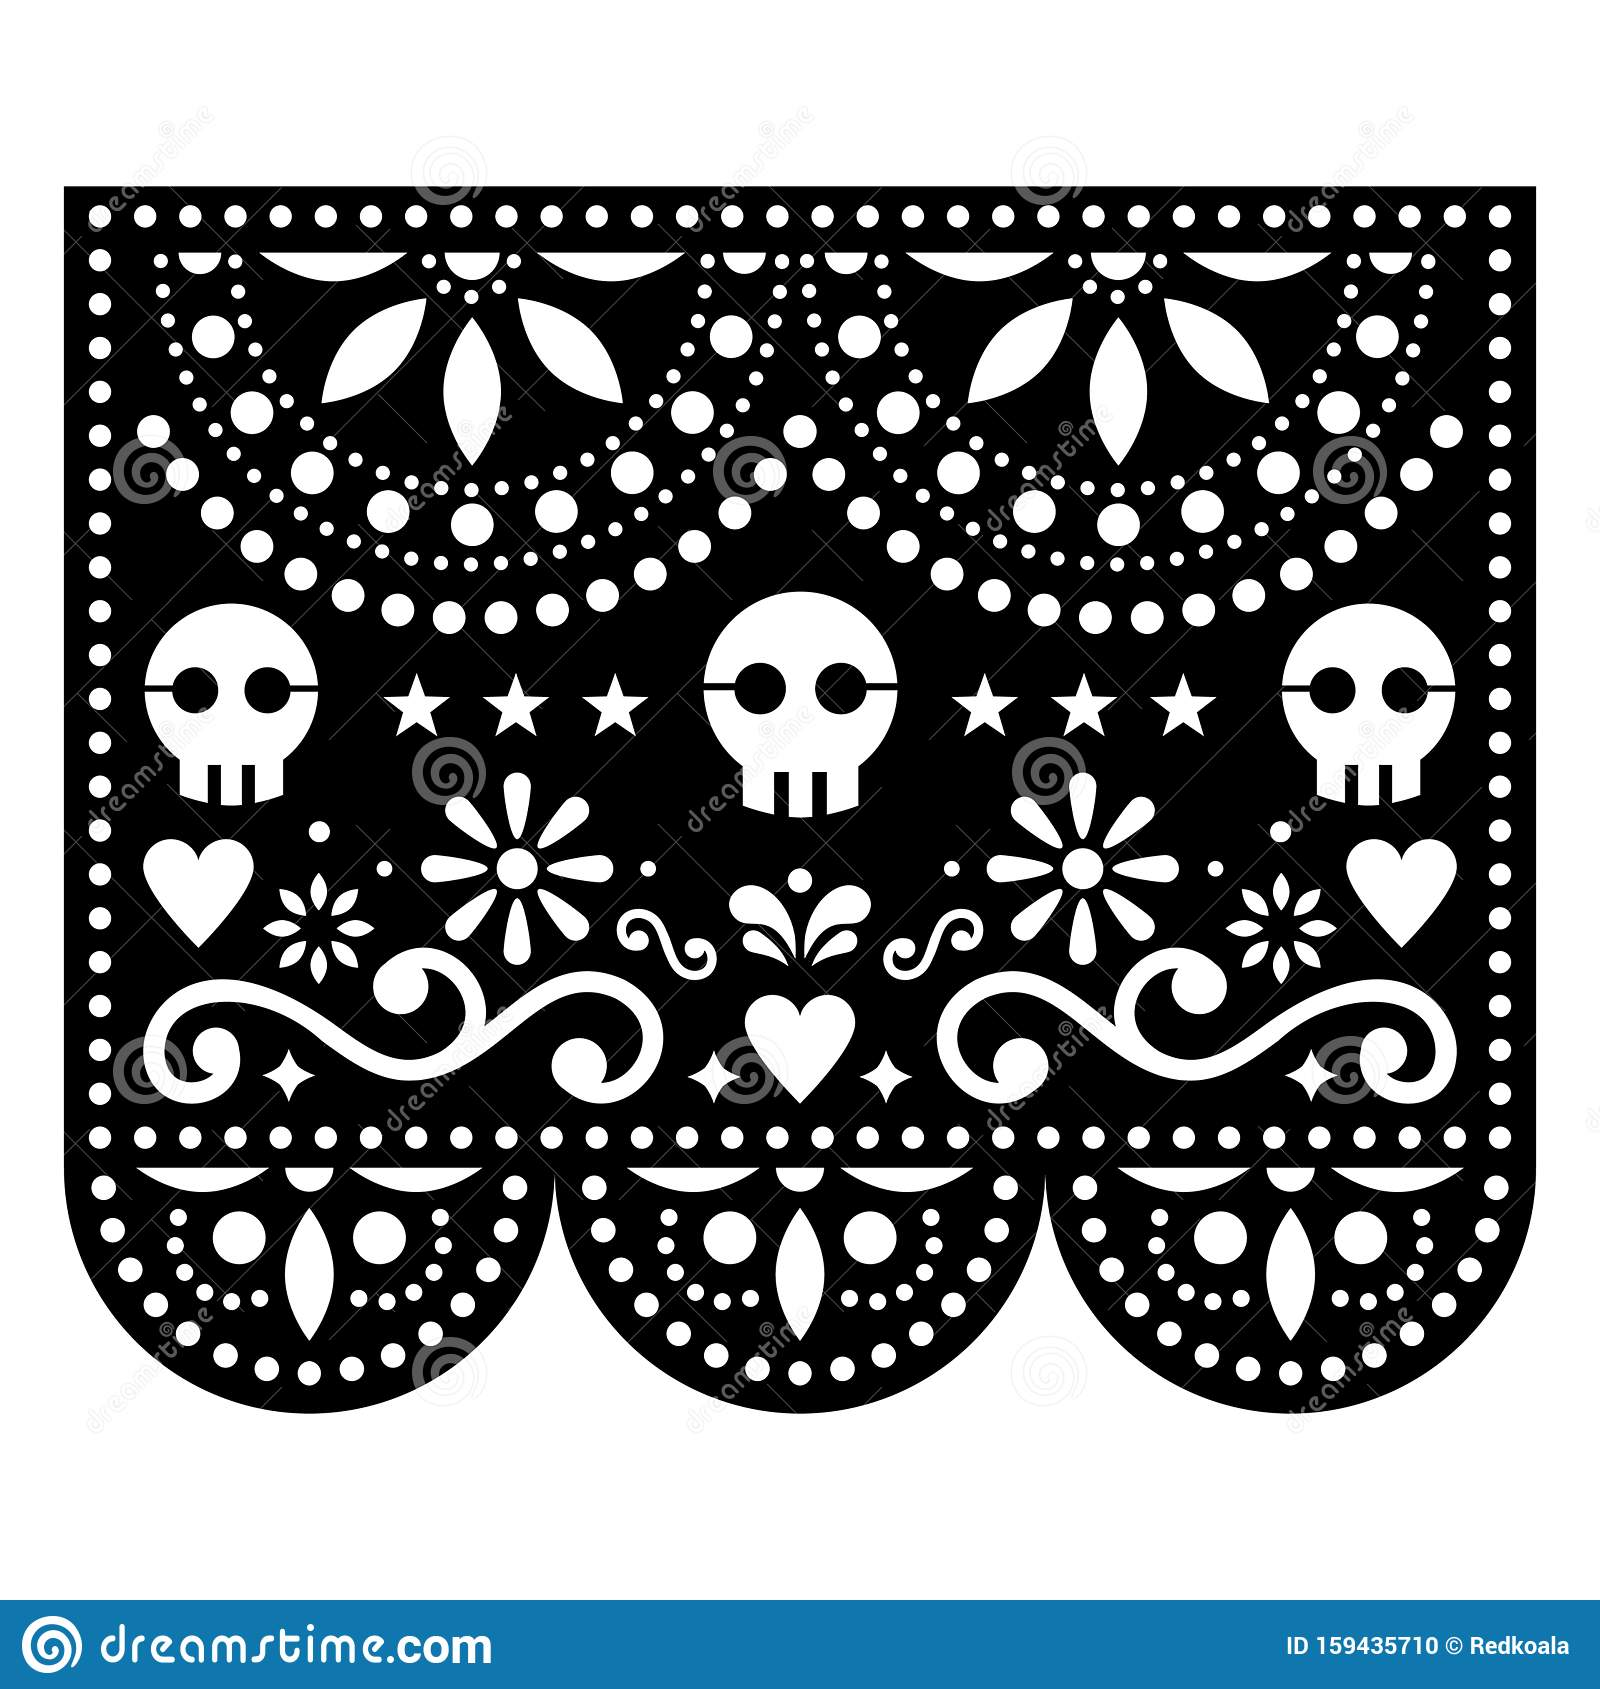 Halloween Papel Picado Design With Skulls, Mexican Paper